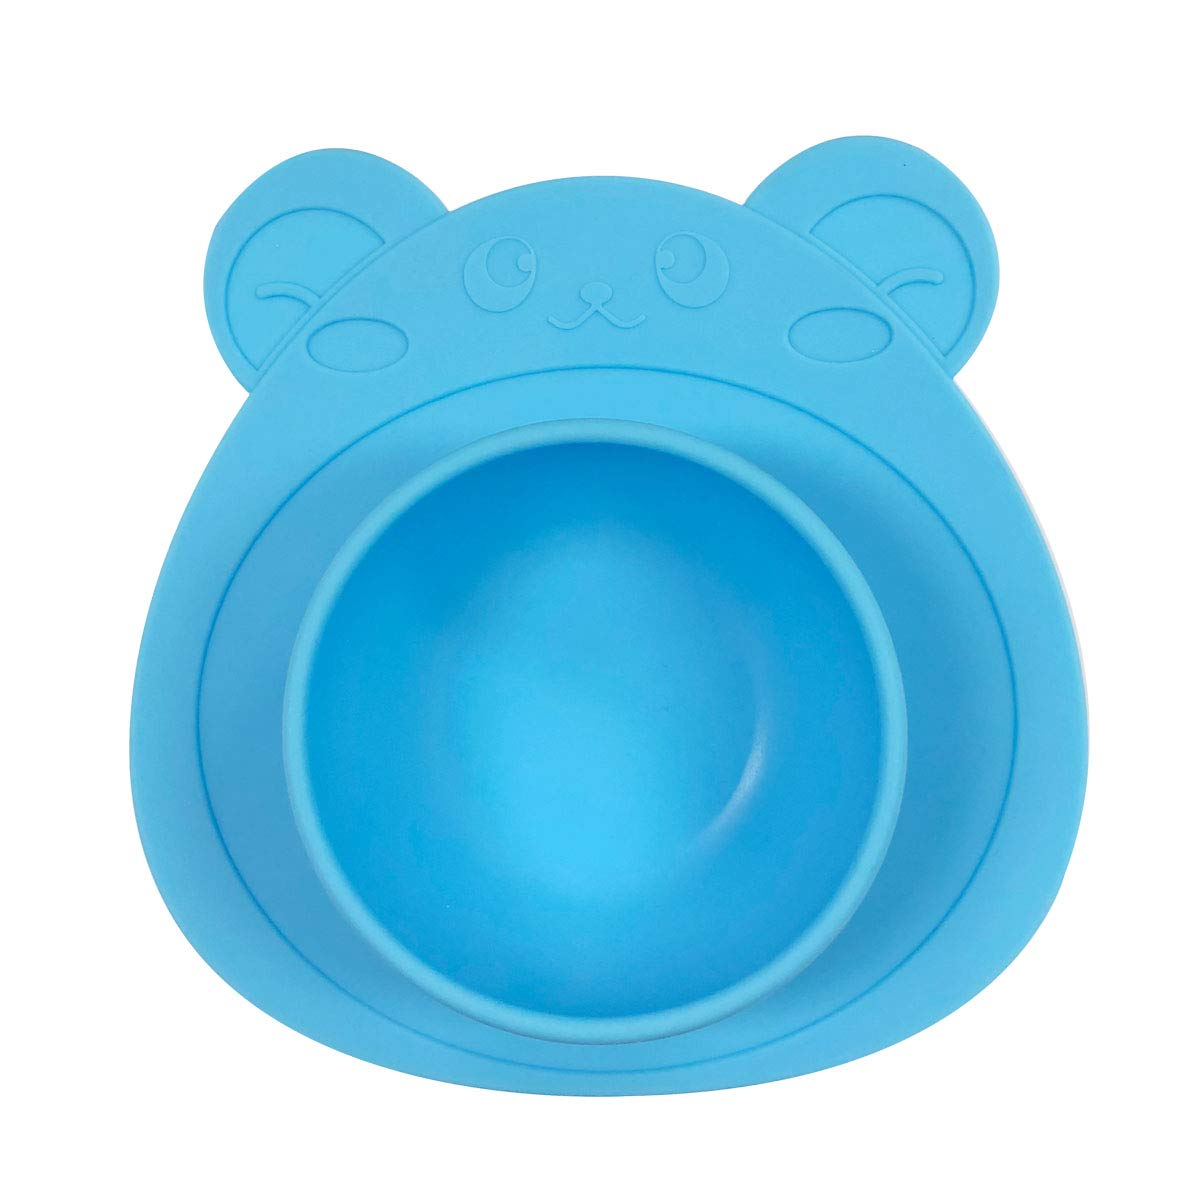 Wrapables Silicone Placemat + Suction Food Bowl for Baby, Blue Bear